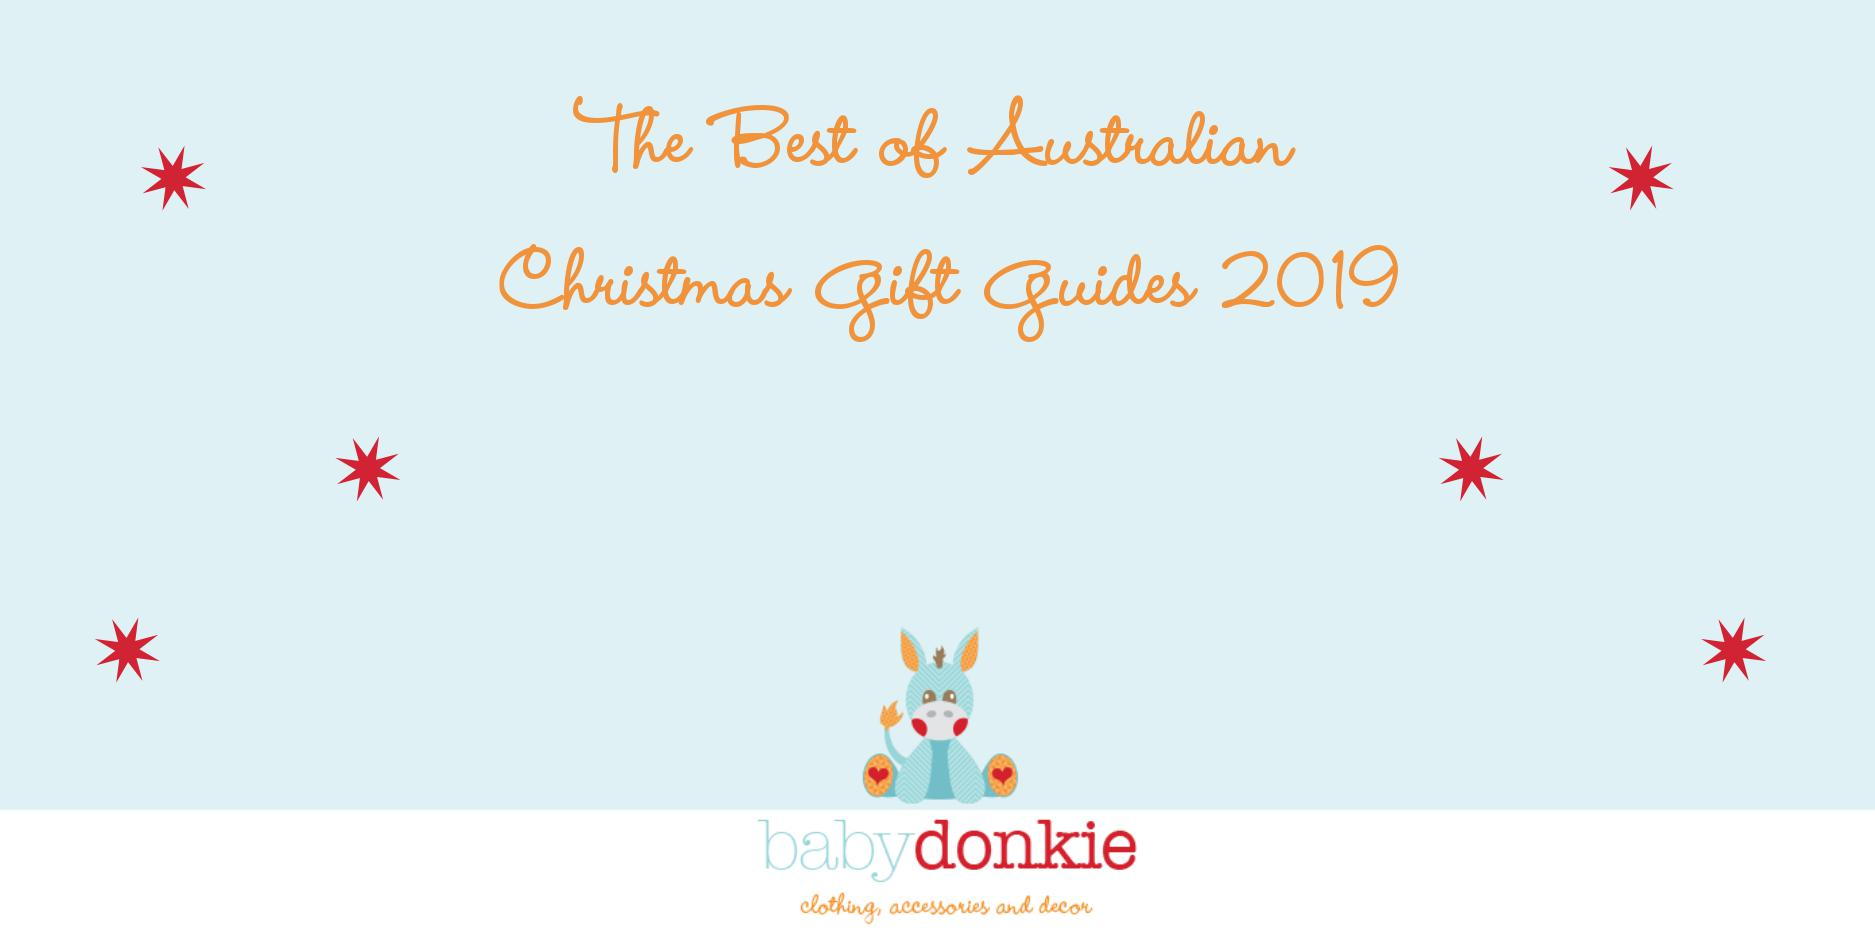 The Best of Australian Christmas Gift Guides 2019